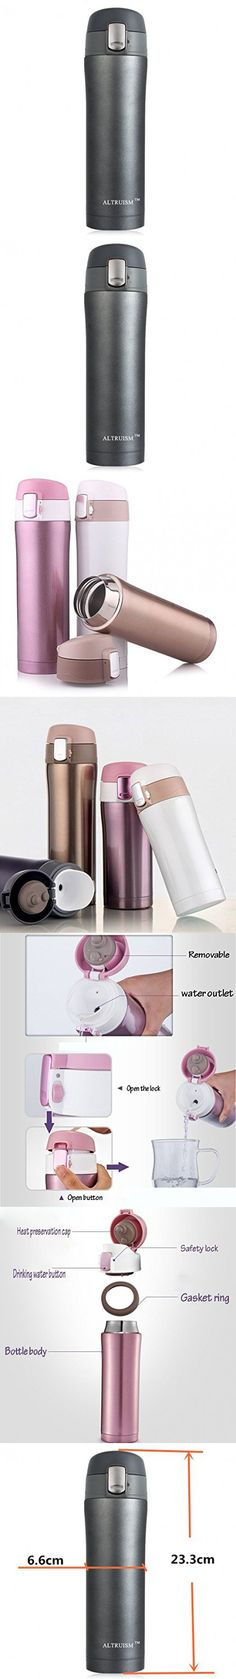 Altruism 500ml Thermoses Cup Double Wall Stainless Steel Thermoses Mug Drinkware Travel Thermoses Coffee Cup Thermoes Vacuum Fask Cups (Black, 500ML)